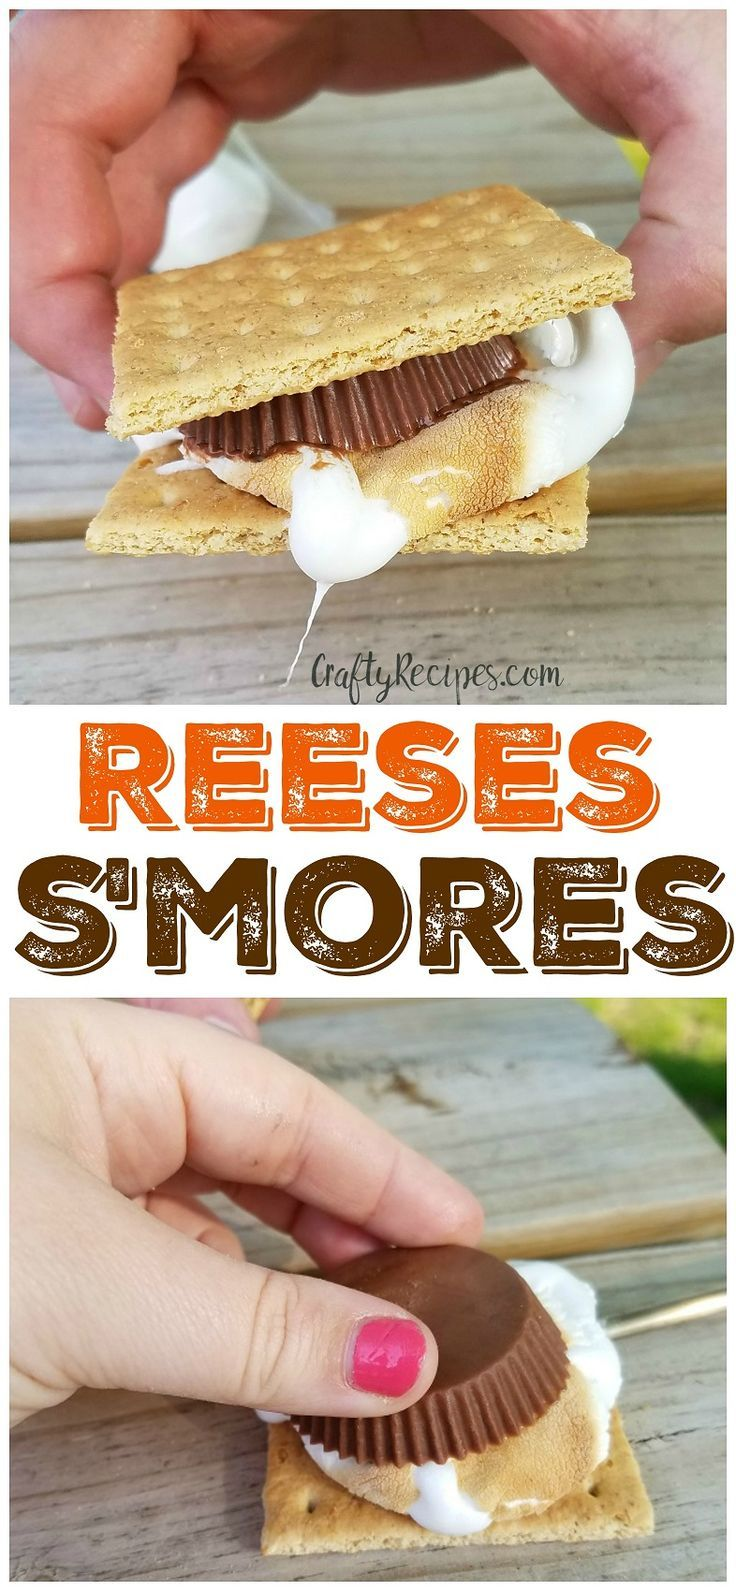 Reeses s'mores...oh my goodness these have been peanut buttery and scrumptious! Enjoyable...